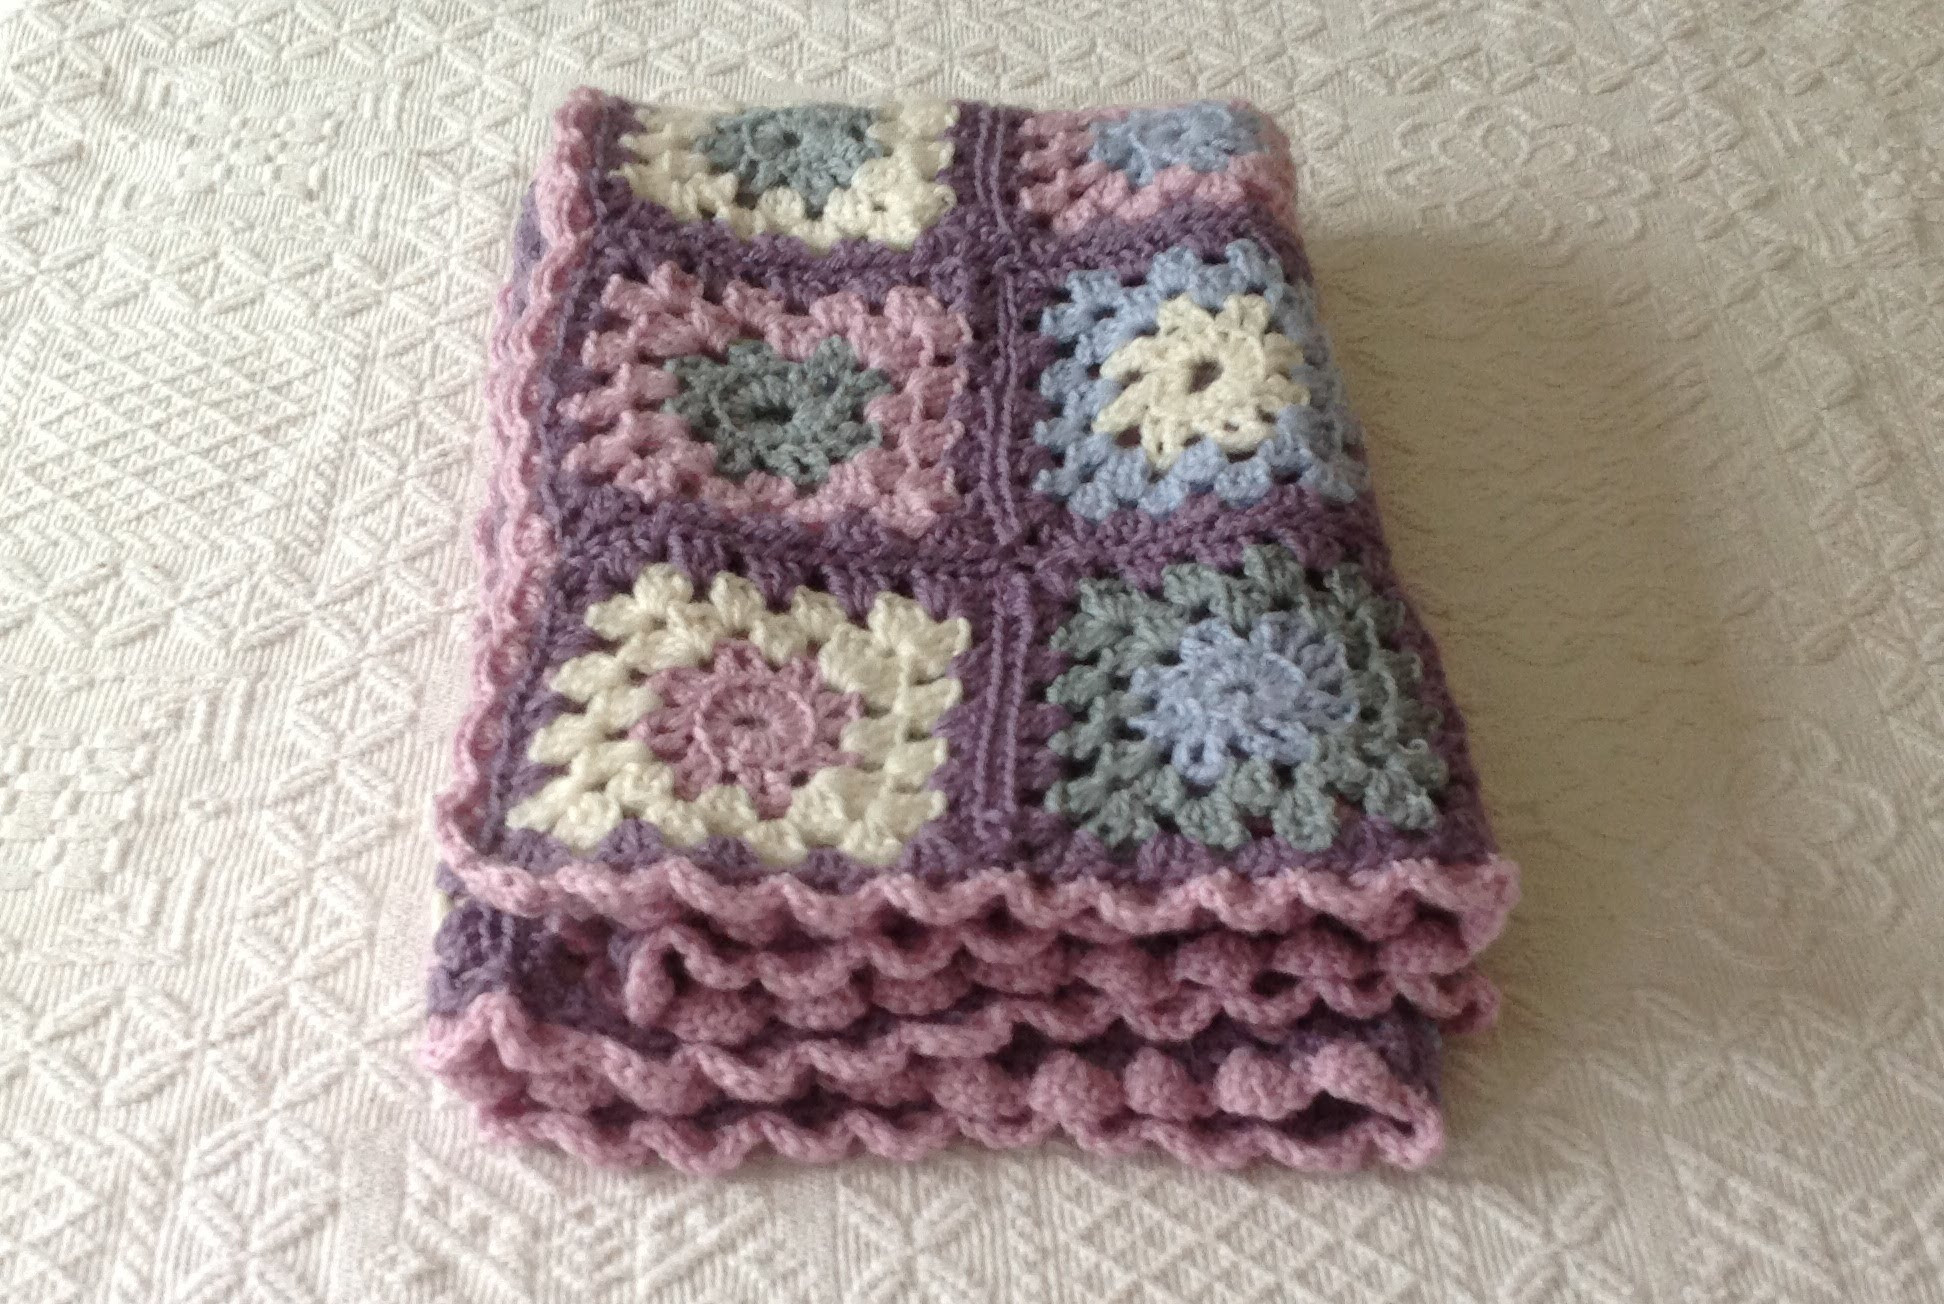 Lovely [video Tutorial] This Very Easy Granny Square Blanket is Crochet for Beginners Granny Square Of Unique 49 Ideas Crochet for Beginners Granny Square